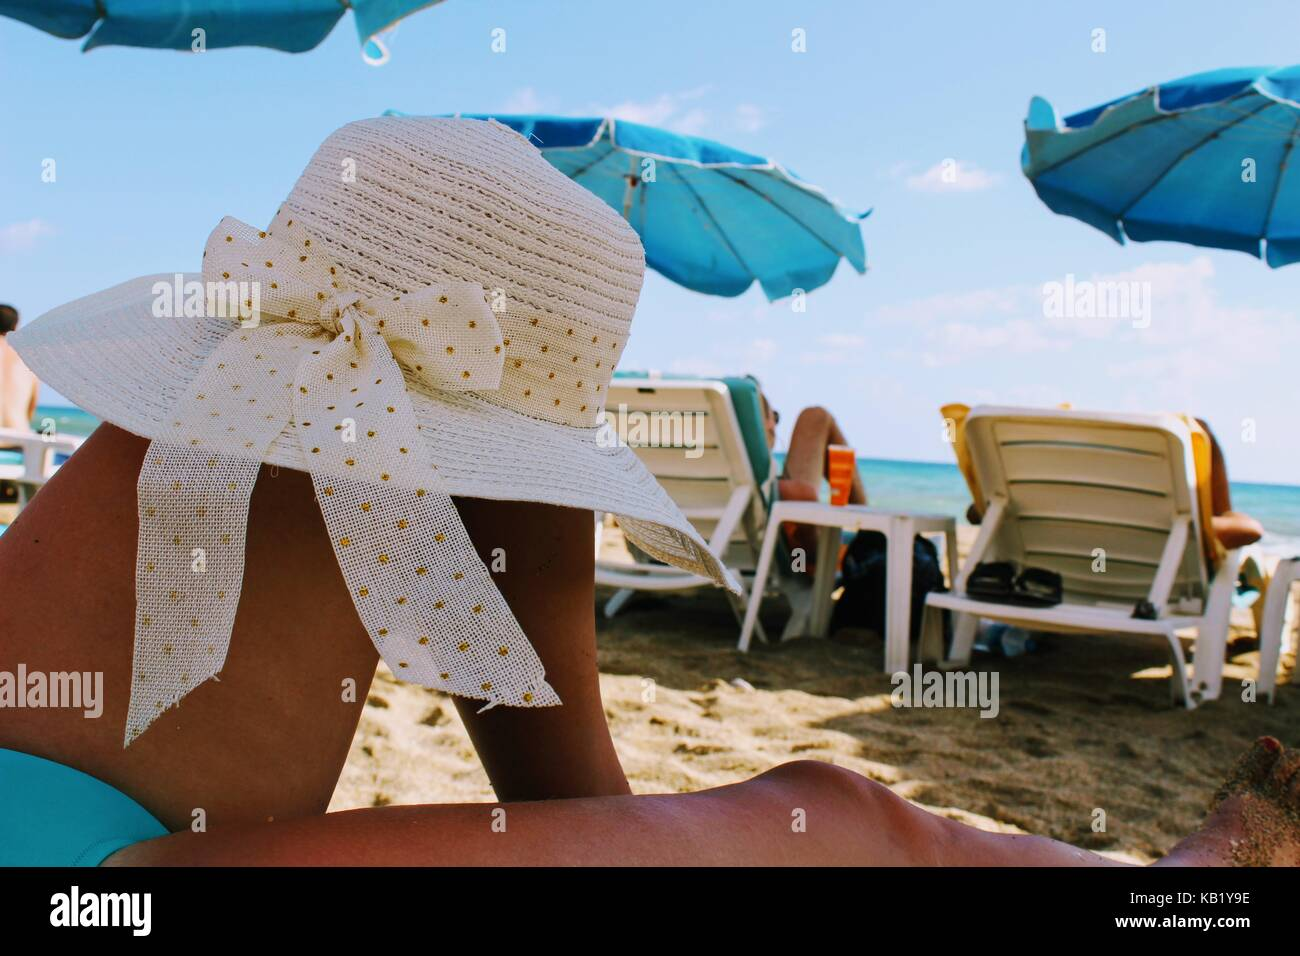 A white hat with wide brim is put on the bent knee of a woman lying on a deckchair on the beach. - Stock Image